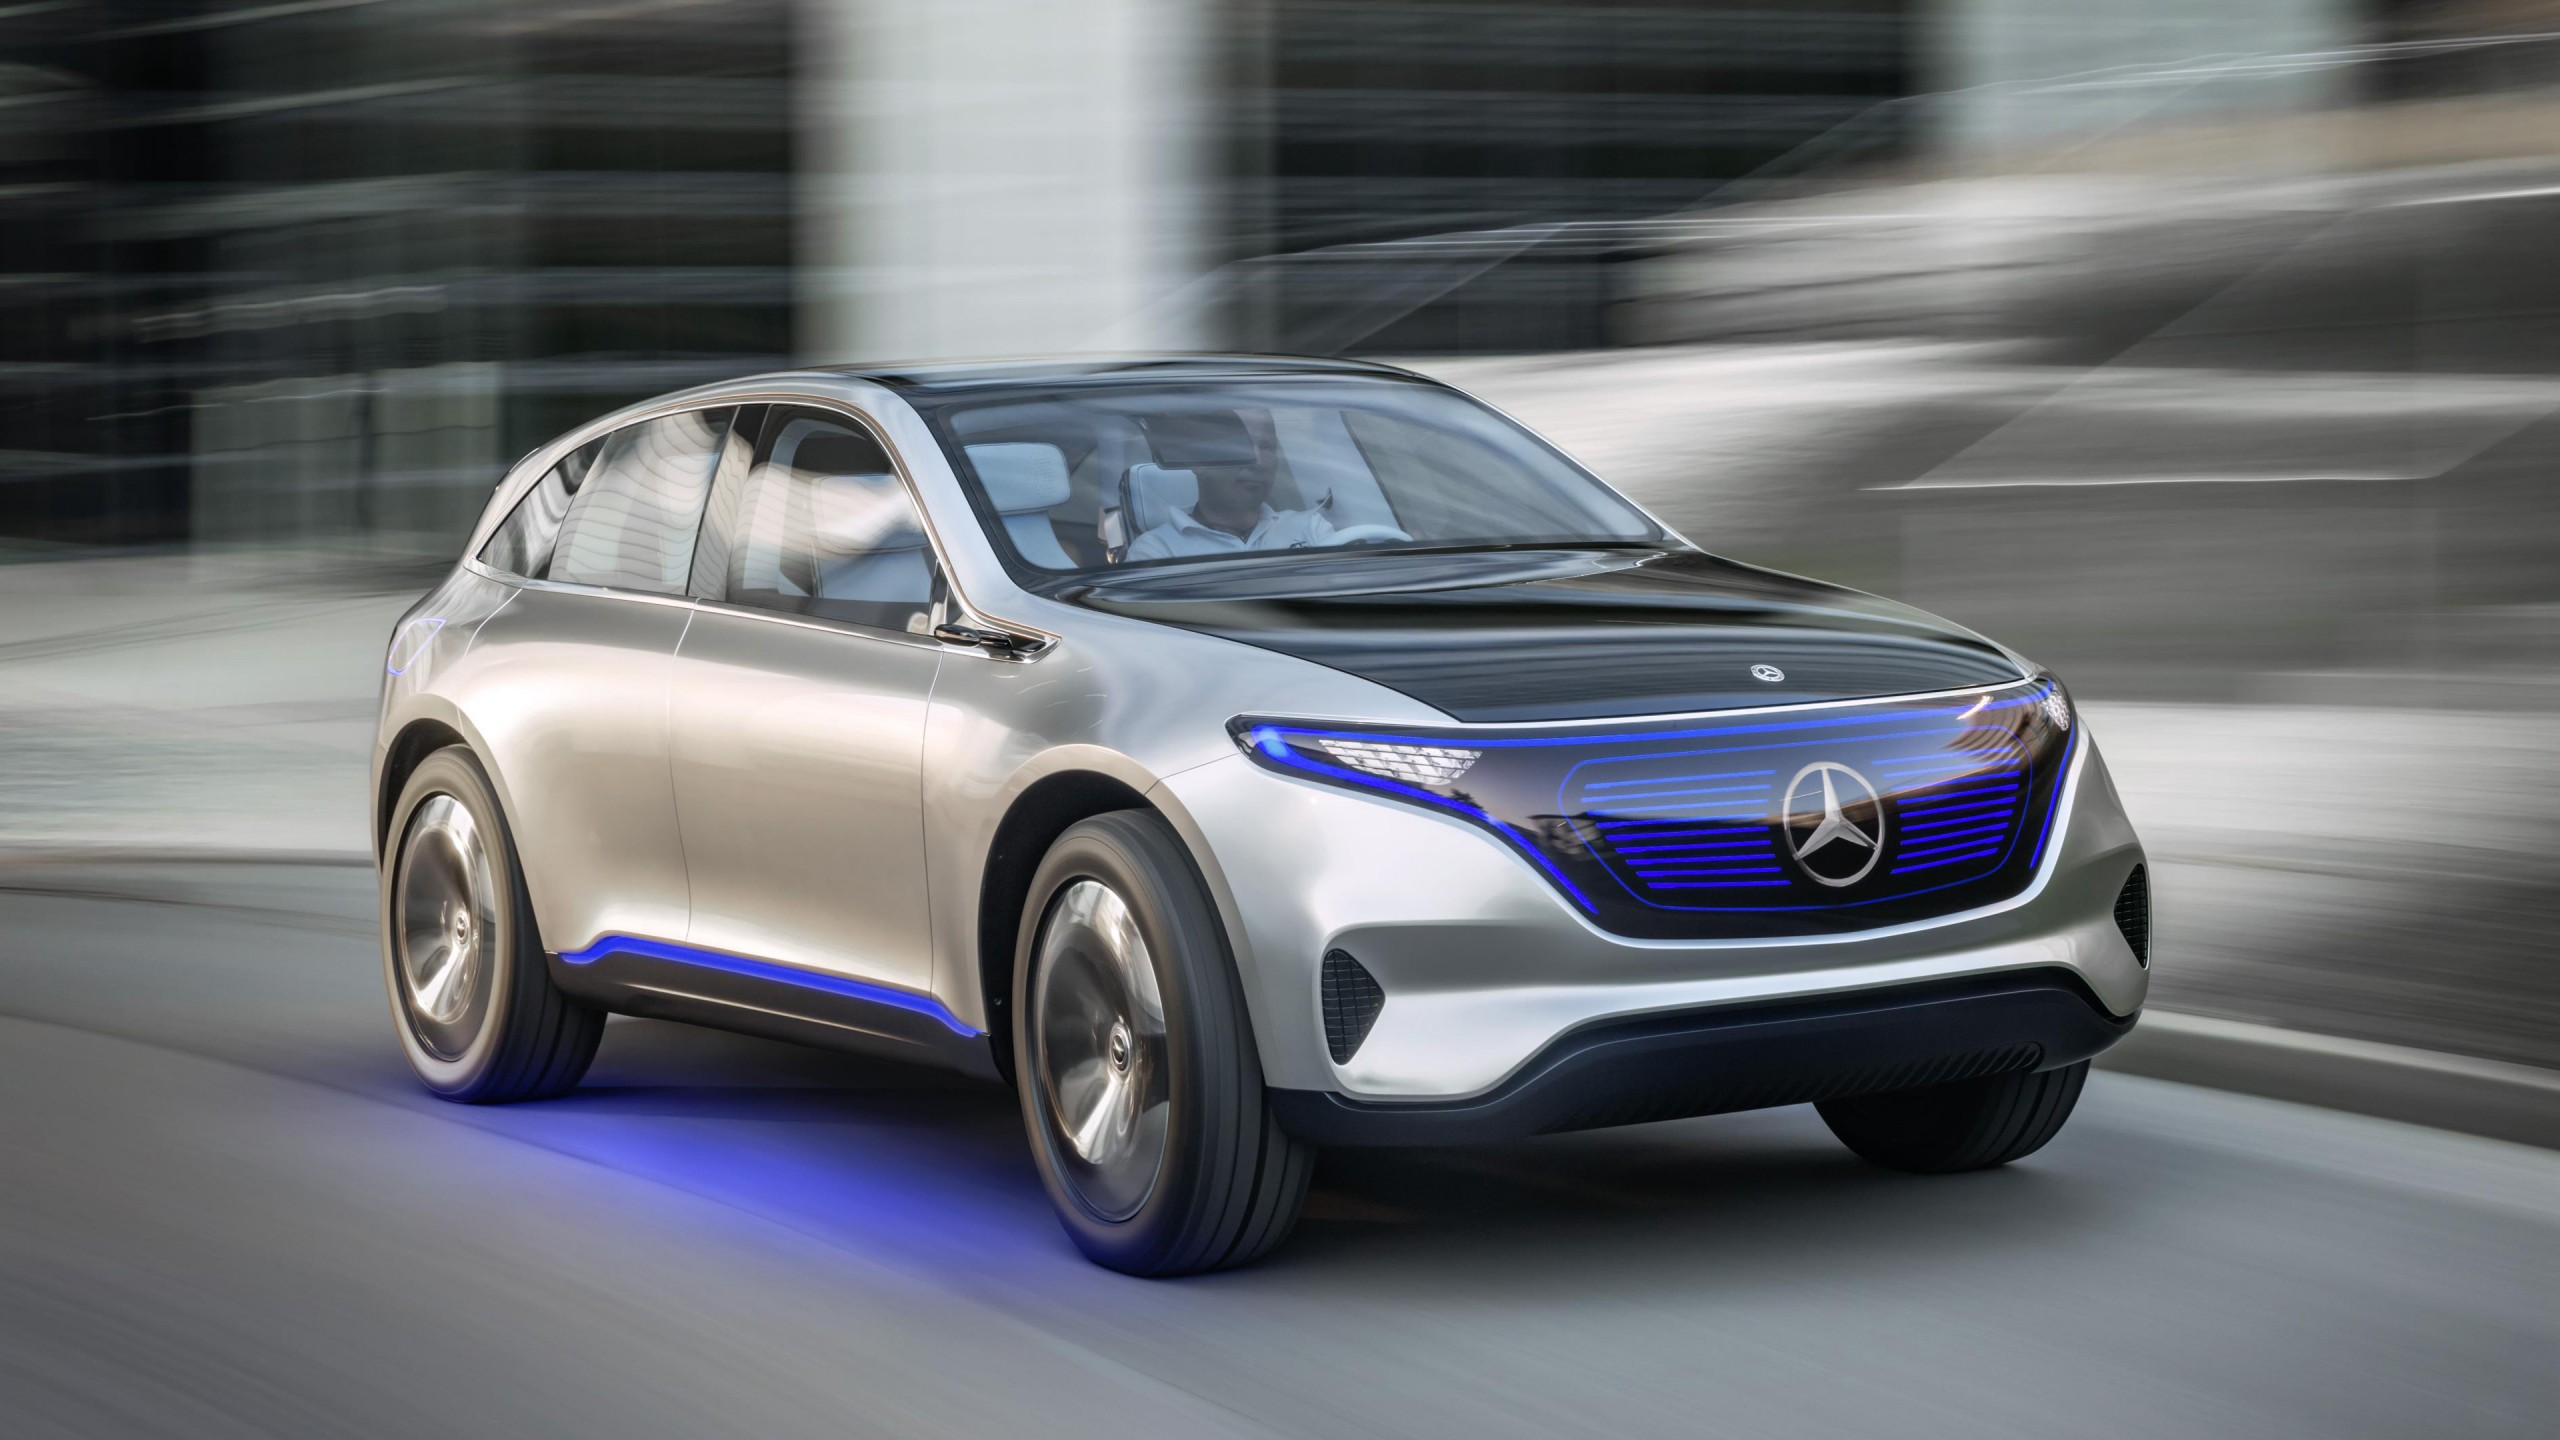 Mercedes benz eq electric suv 4k wallpaper hd car wallpapers for Mercedes benz cars images